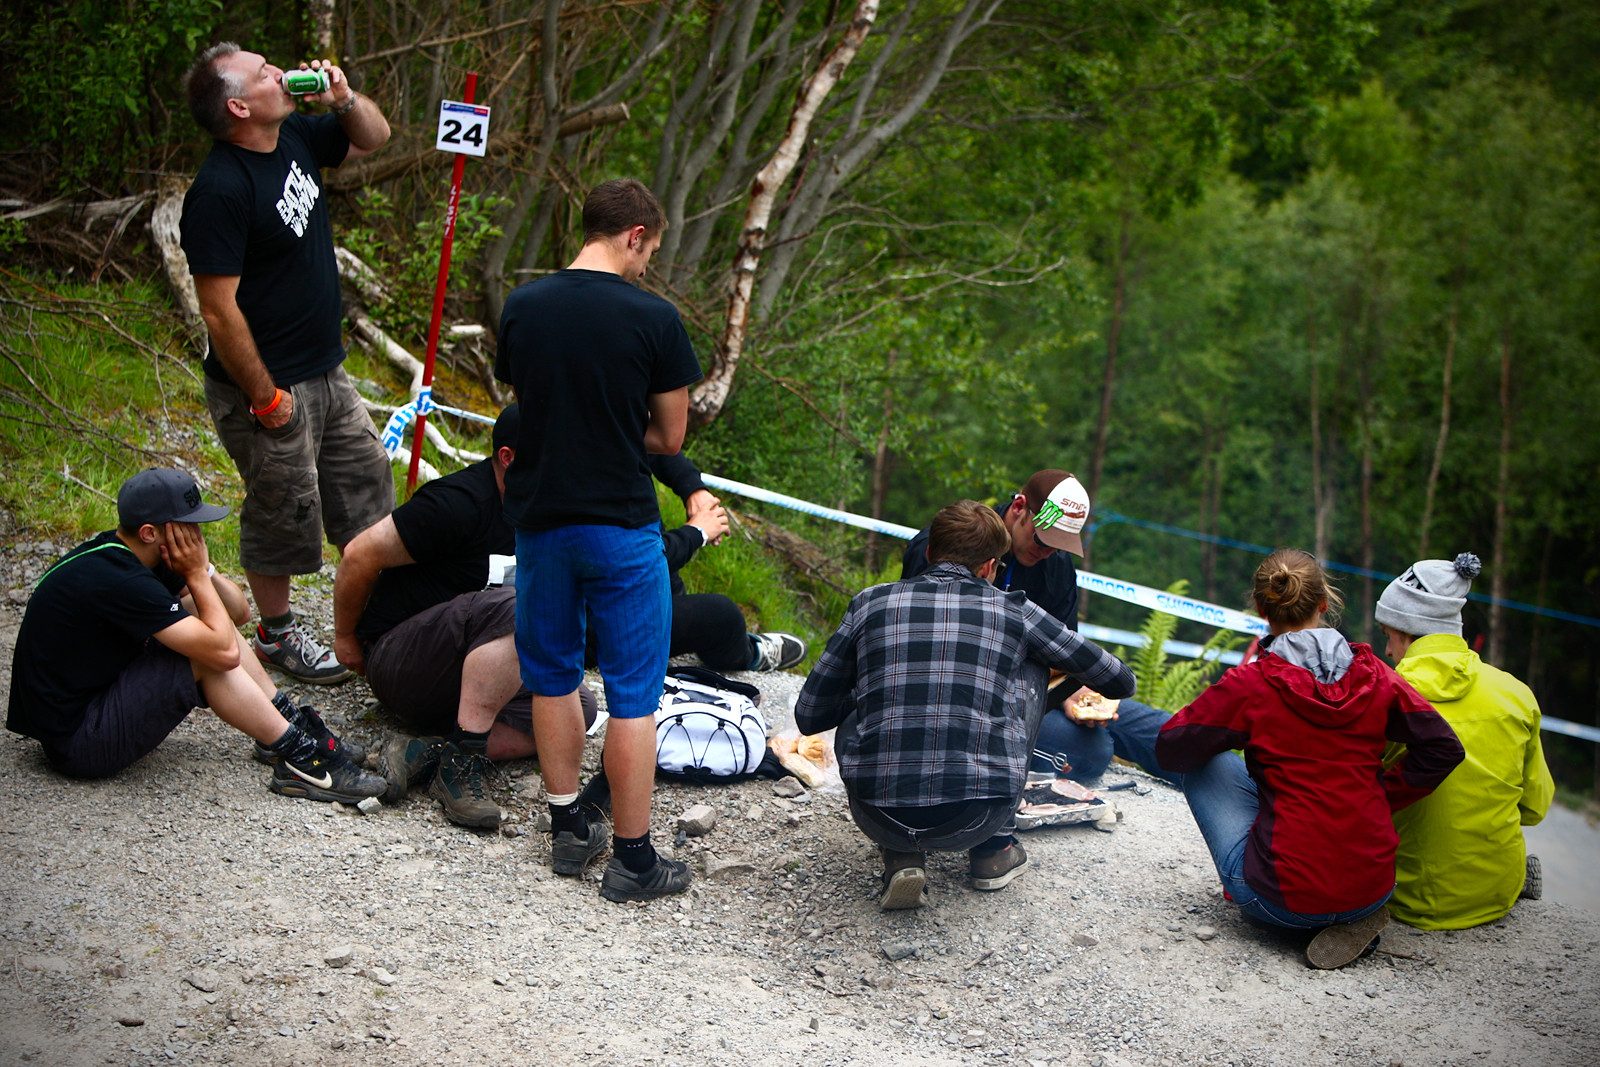 Track Walk BBQ with Steve Peat - 2012 UCI World Cup, Fort WIlliam Scotland, Day 1 - Mountain Biking Pictures - Vital MTB